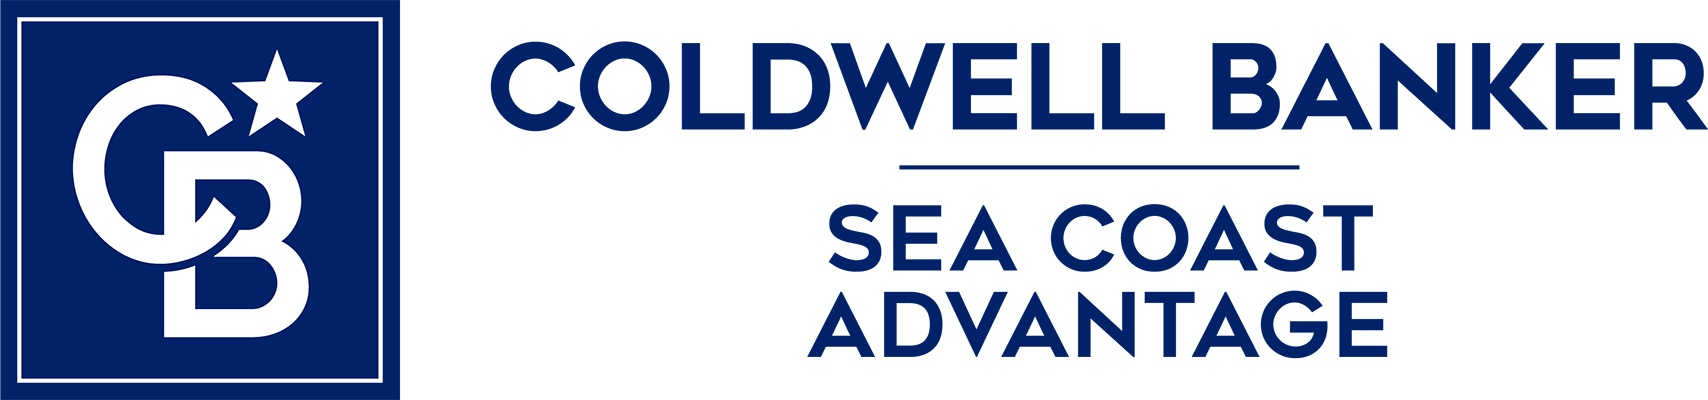 Melanie Spencer - Coldwell Banker Sea Coast Advantage Realty Logo